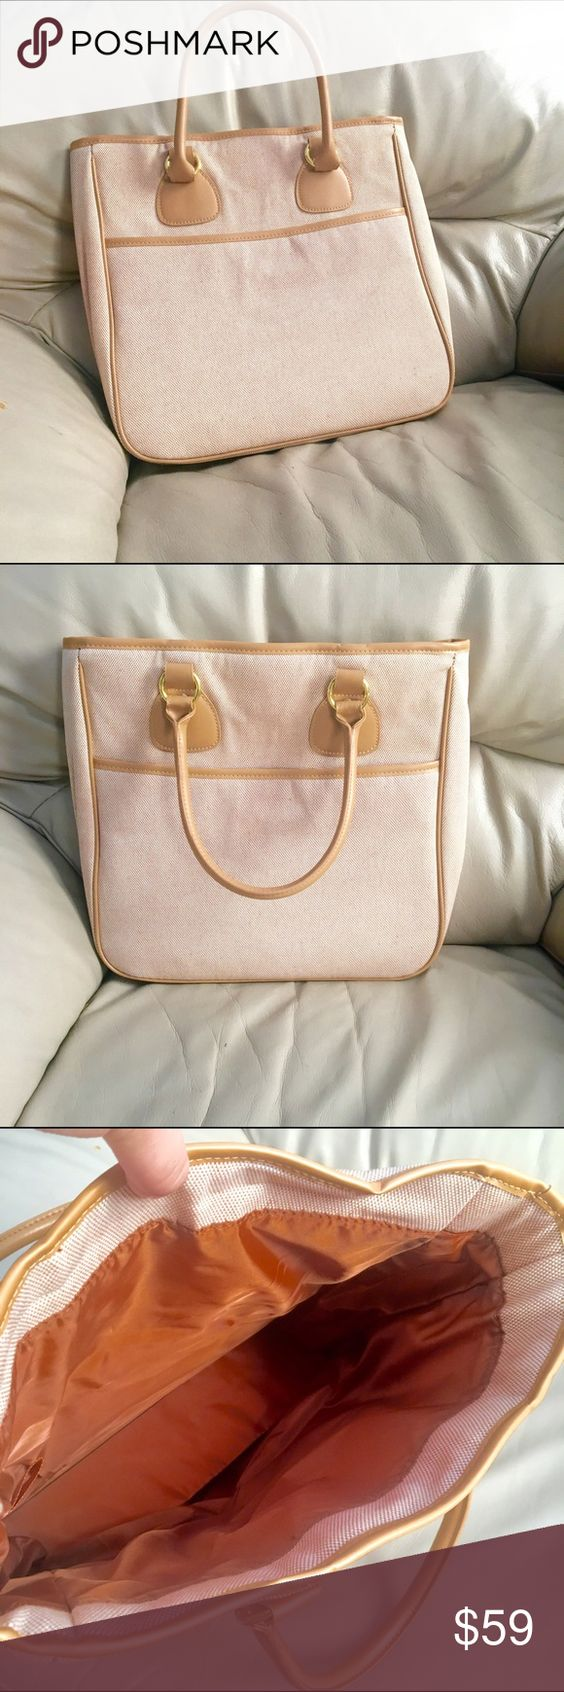 A pretty and tan shoulder purse 😊🎈🎉 It's big and easy to take around and I will lower price if you want just ask Bags Shoulder Bags